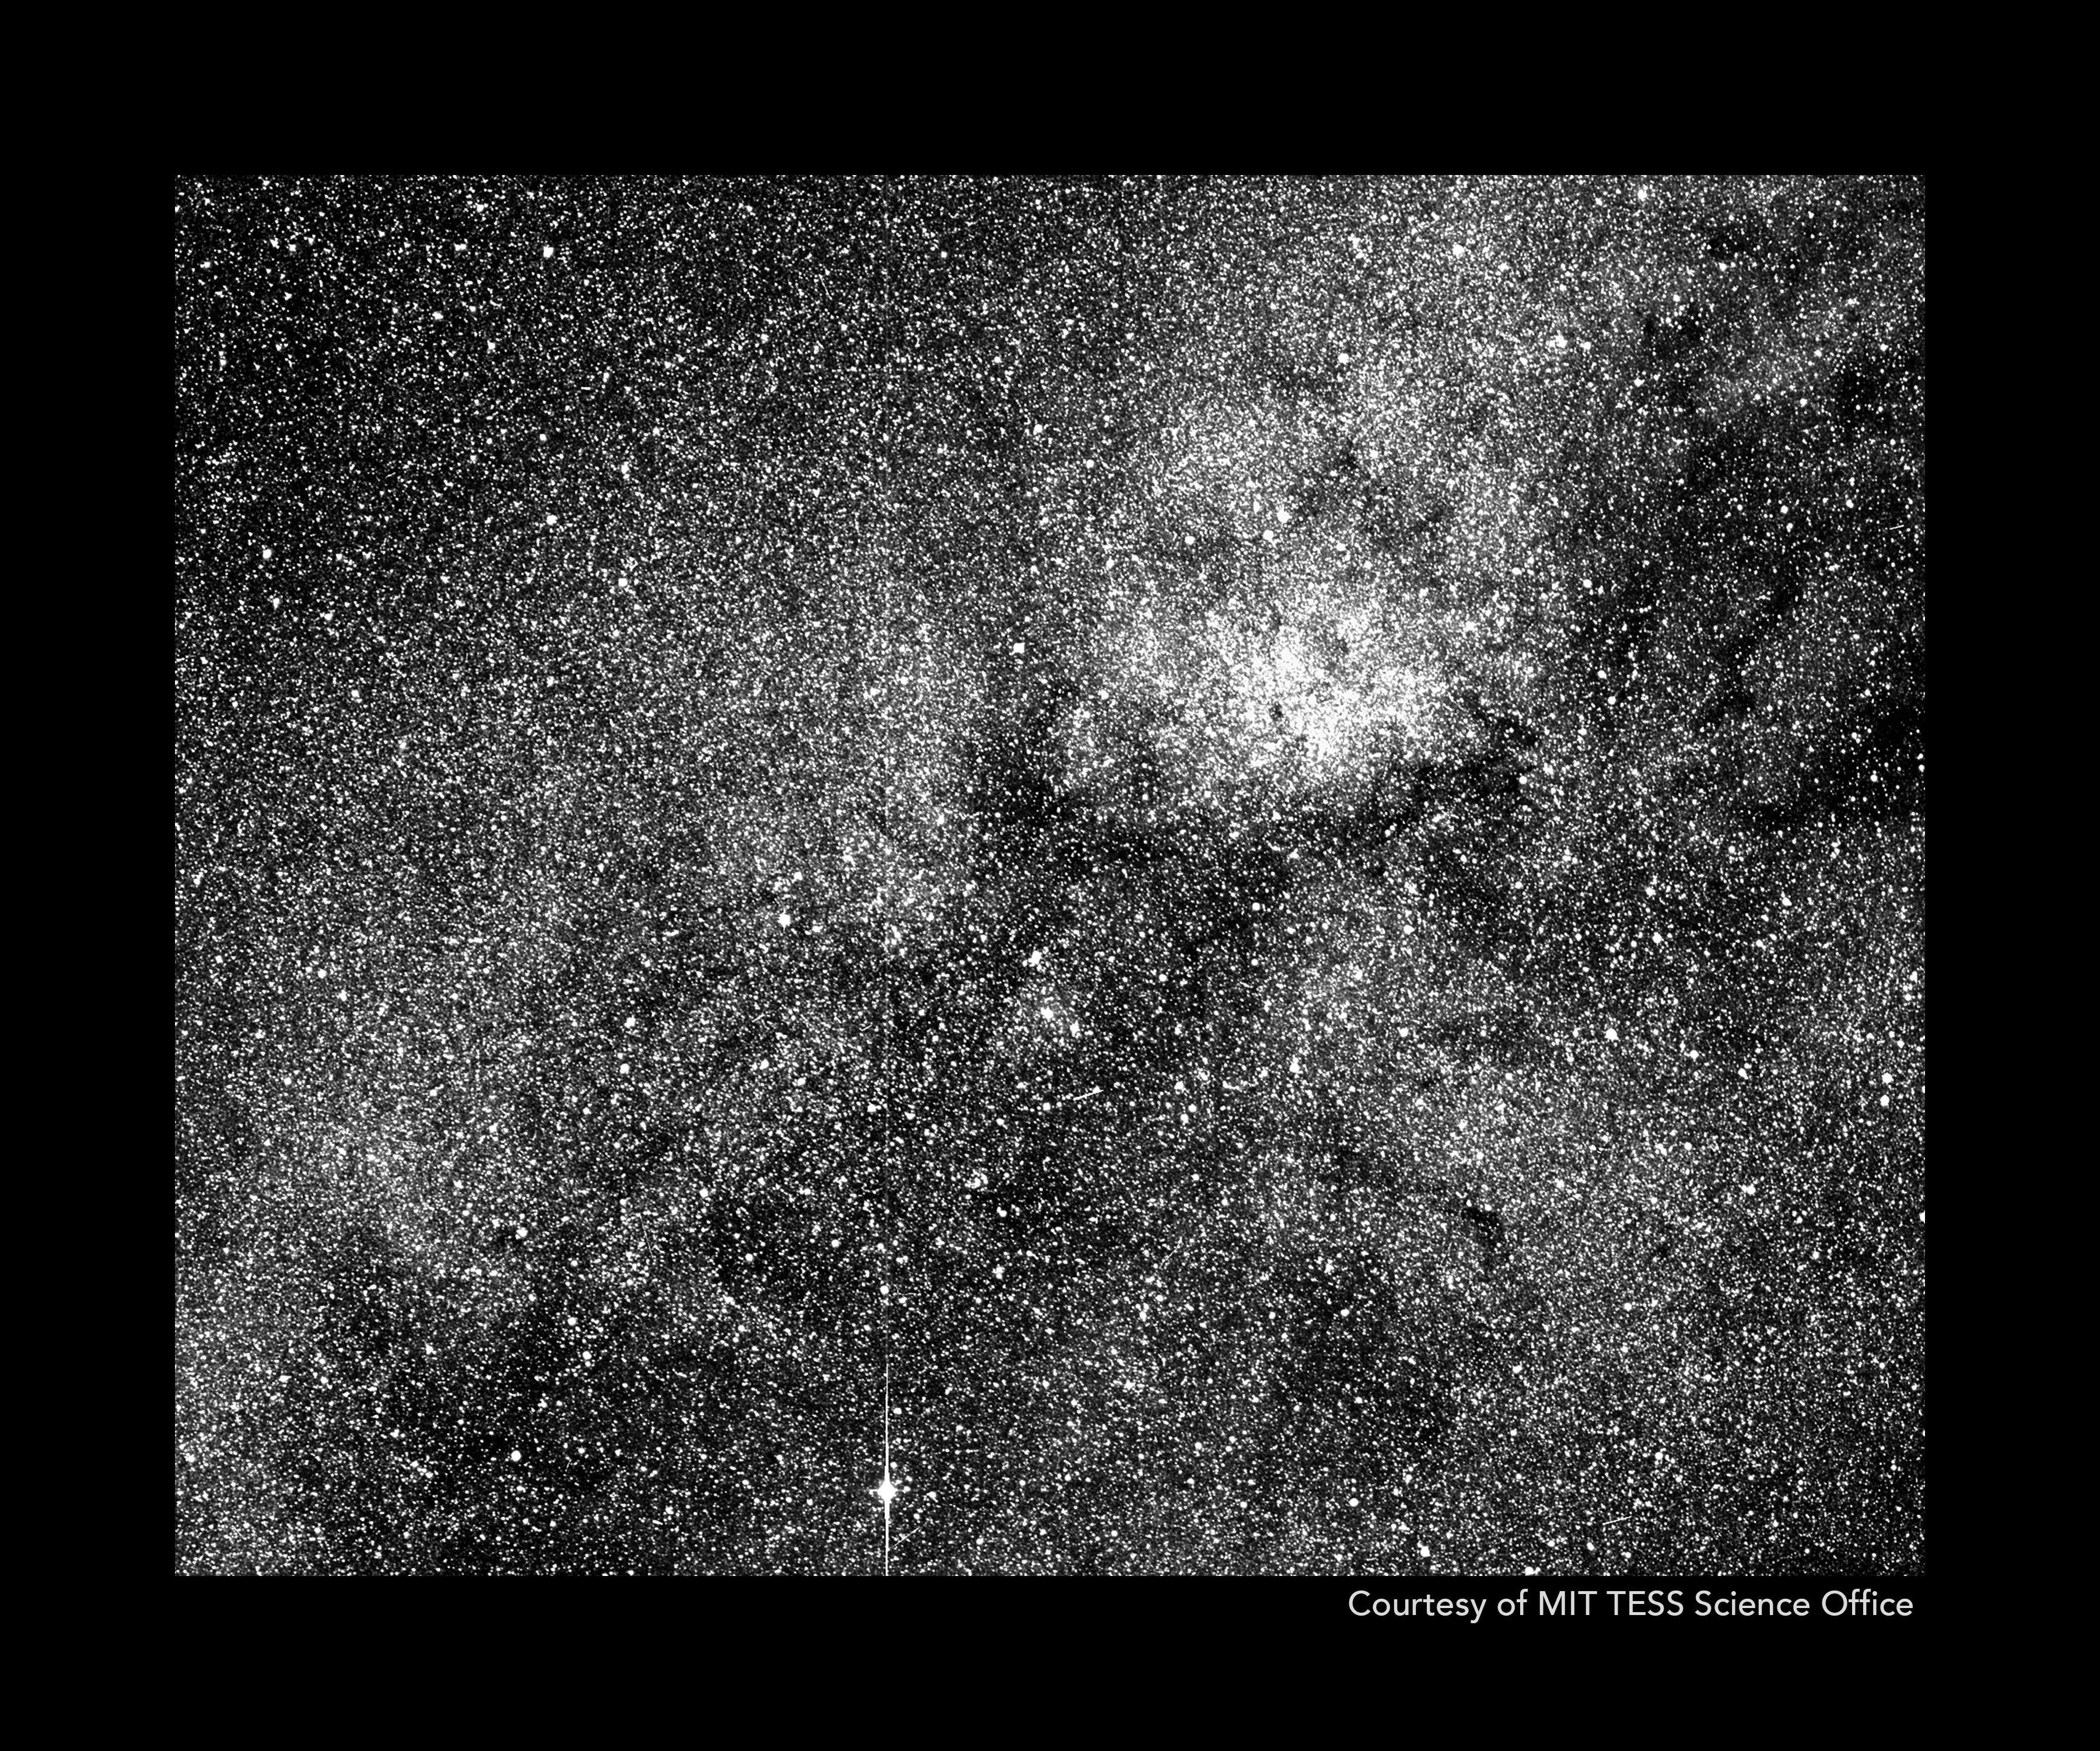 Black and white image packed with stars.